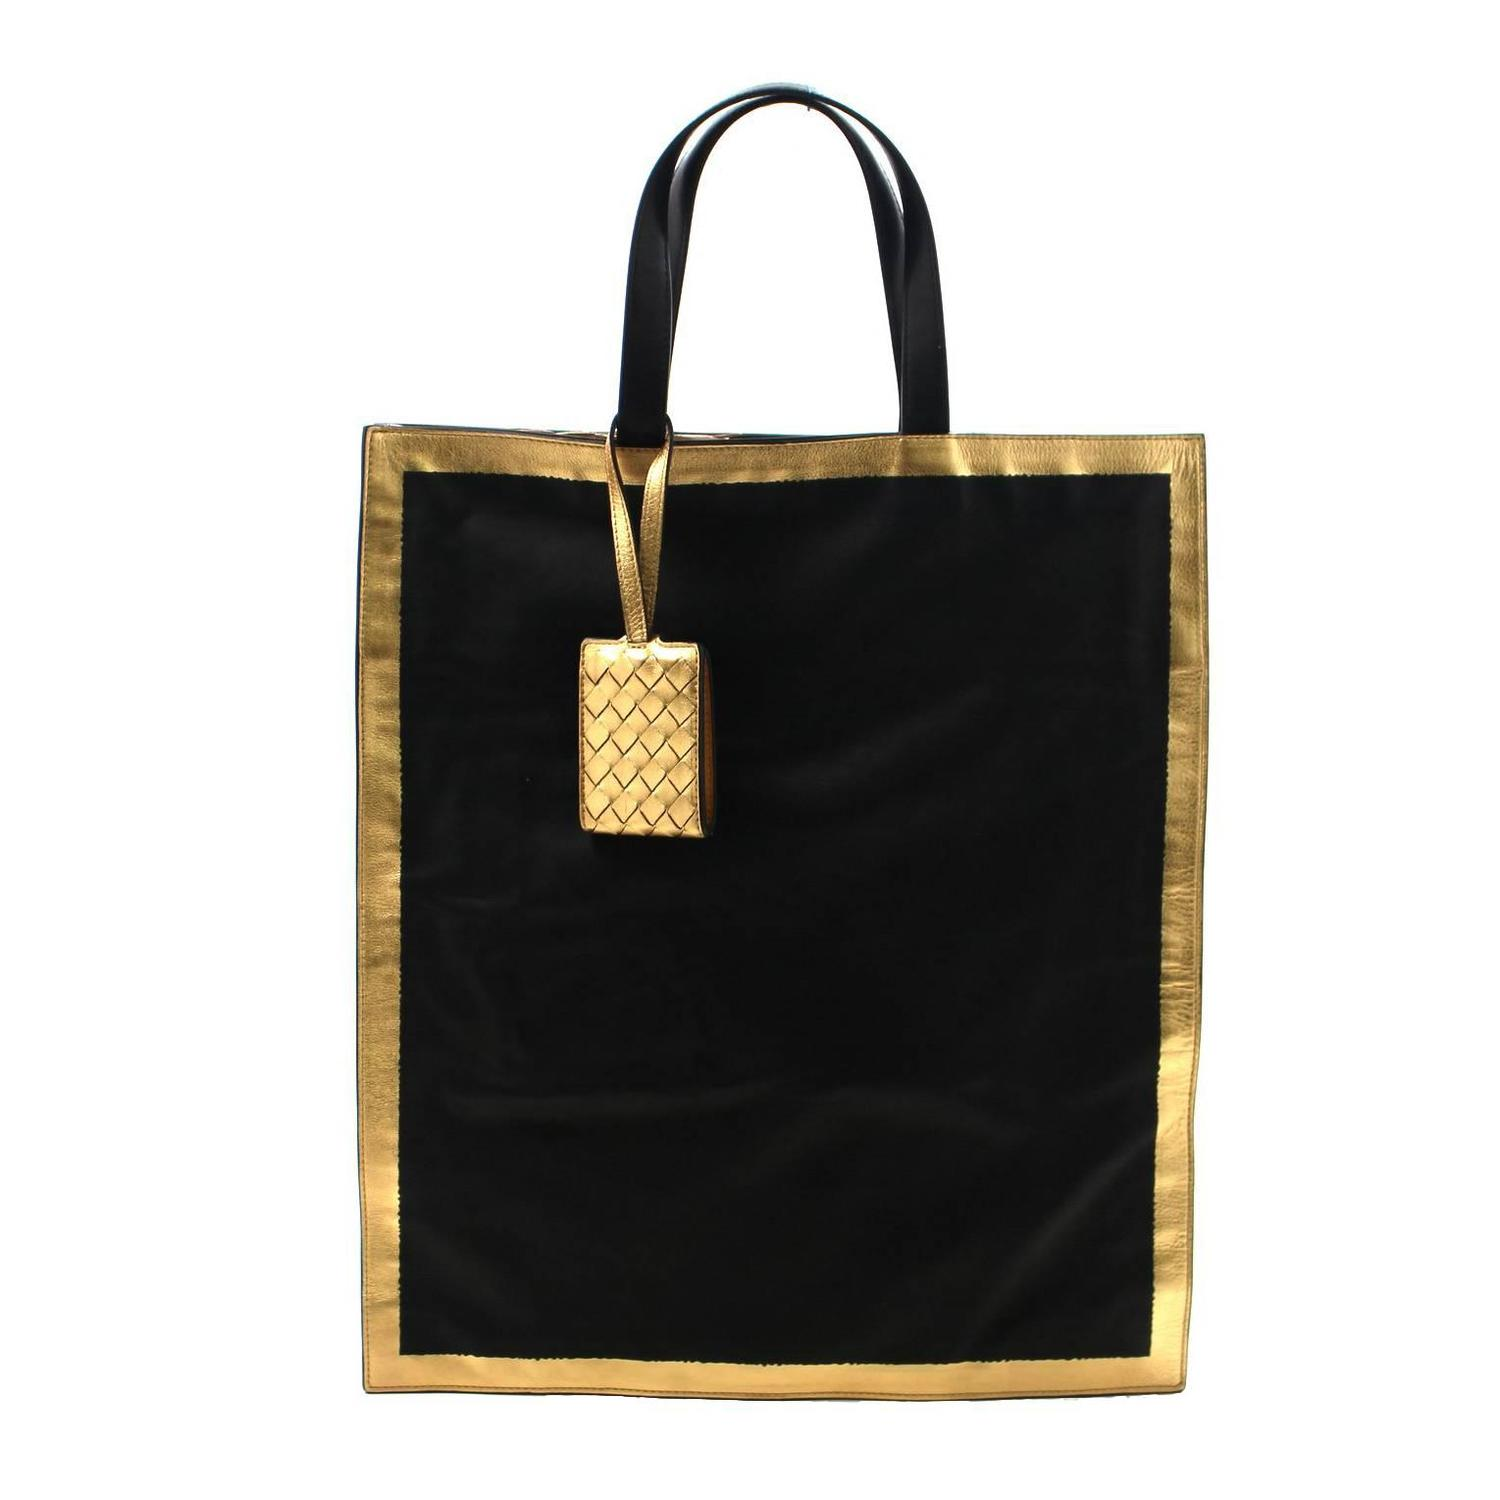 Black and Gold Tote Bag Black and Gold Gold Bridesmaid Gift Bags Black and Gold Gold Bridesmaid Tote Bags (EBP) ModParty. 5 out of 5 stars (45,) $ Favorite There are gold tote bag for sale on Etsy, and they cost $ on average. The most common gold tote bag material is metal. The most popular color? You guessed it.